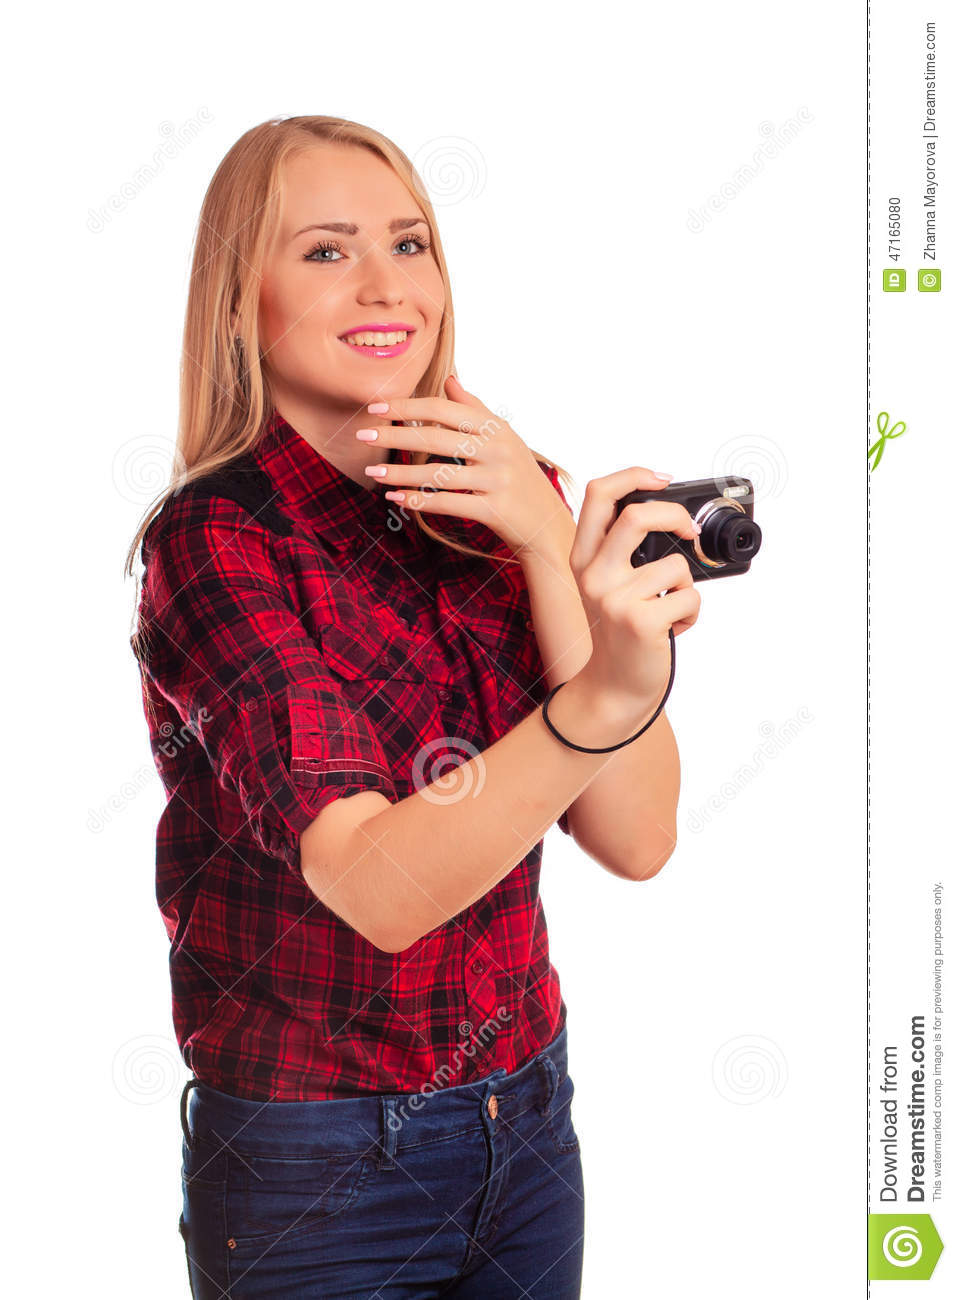 Attractive female photographer humiliating compact camera - isolated on white